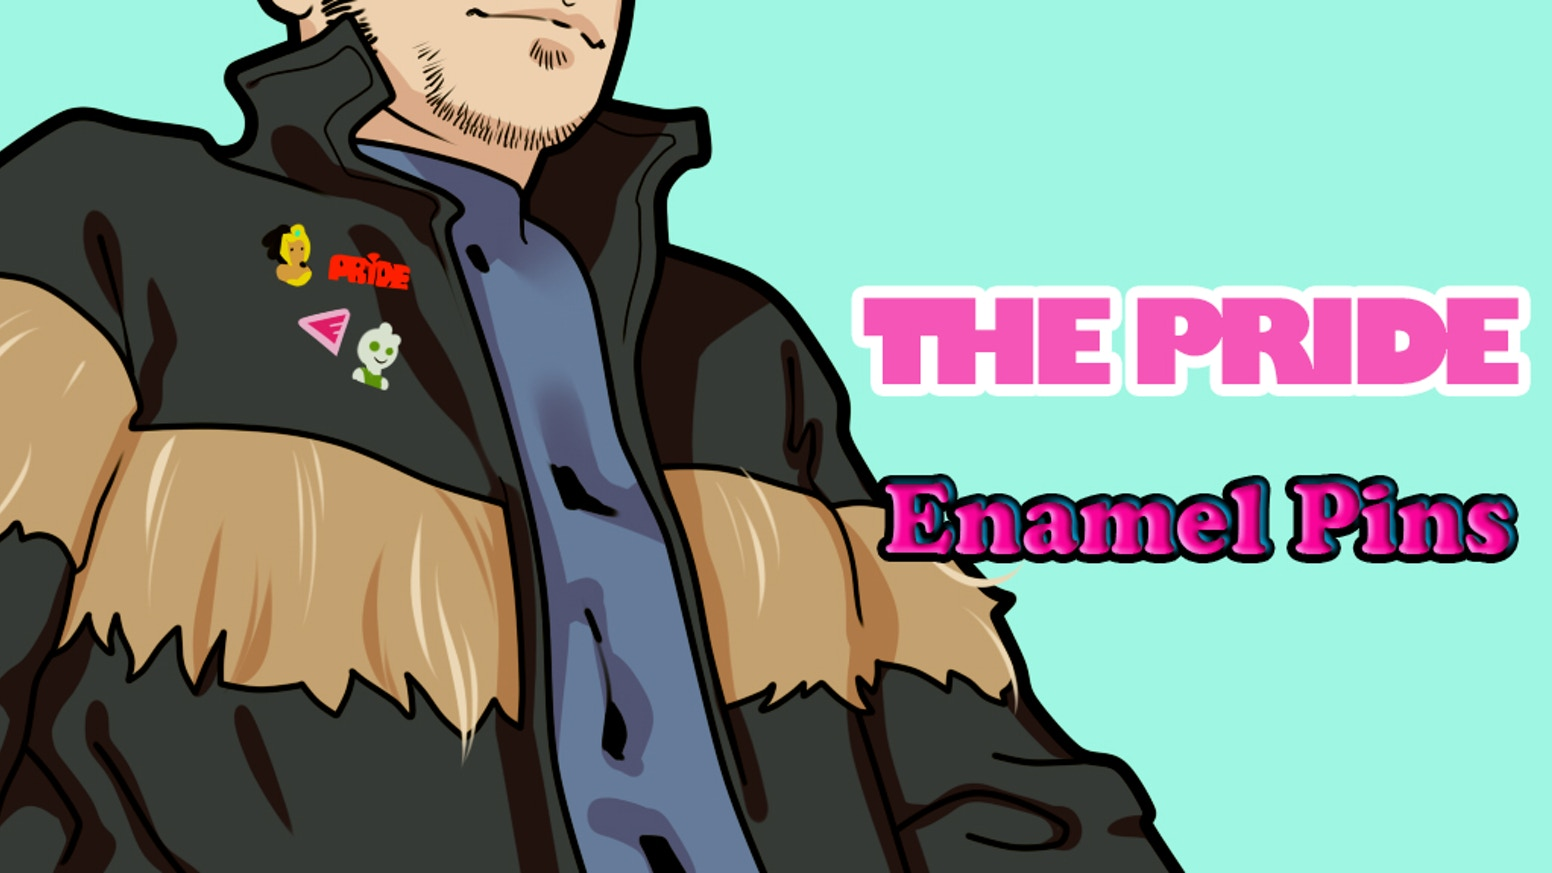 As part of Make 100, help us make a limited edition The Pride pin of one of the LGBTQ+ superhero team's most popular characters!